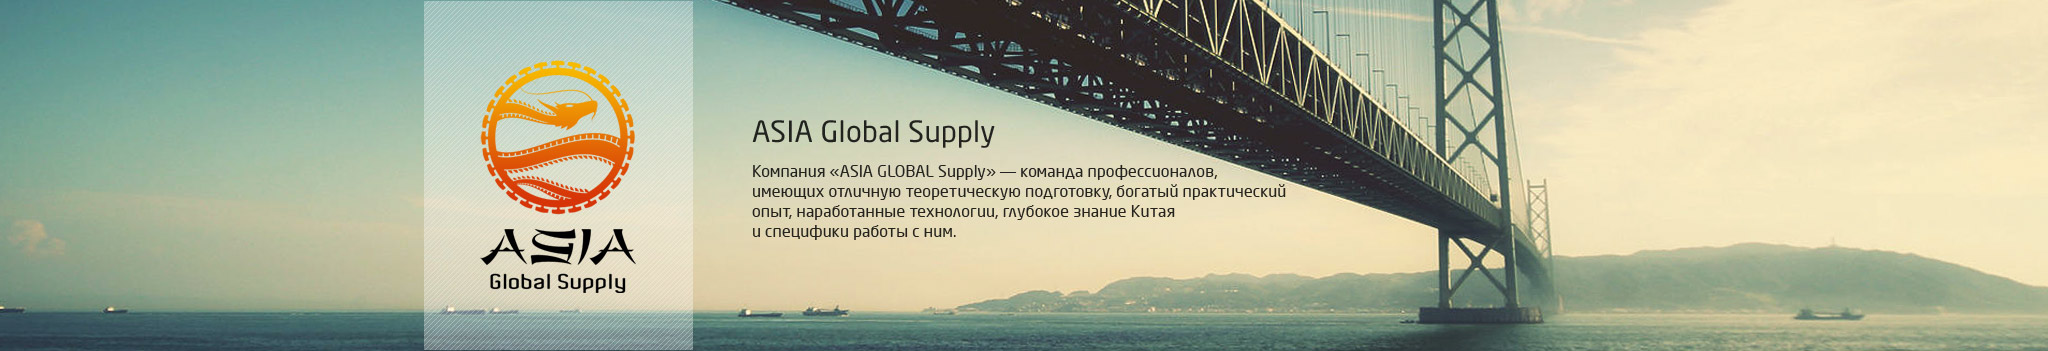 Создание сайта для компании Asia Global Supply